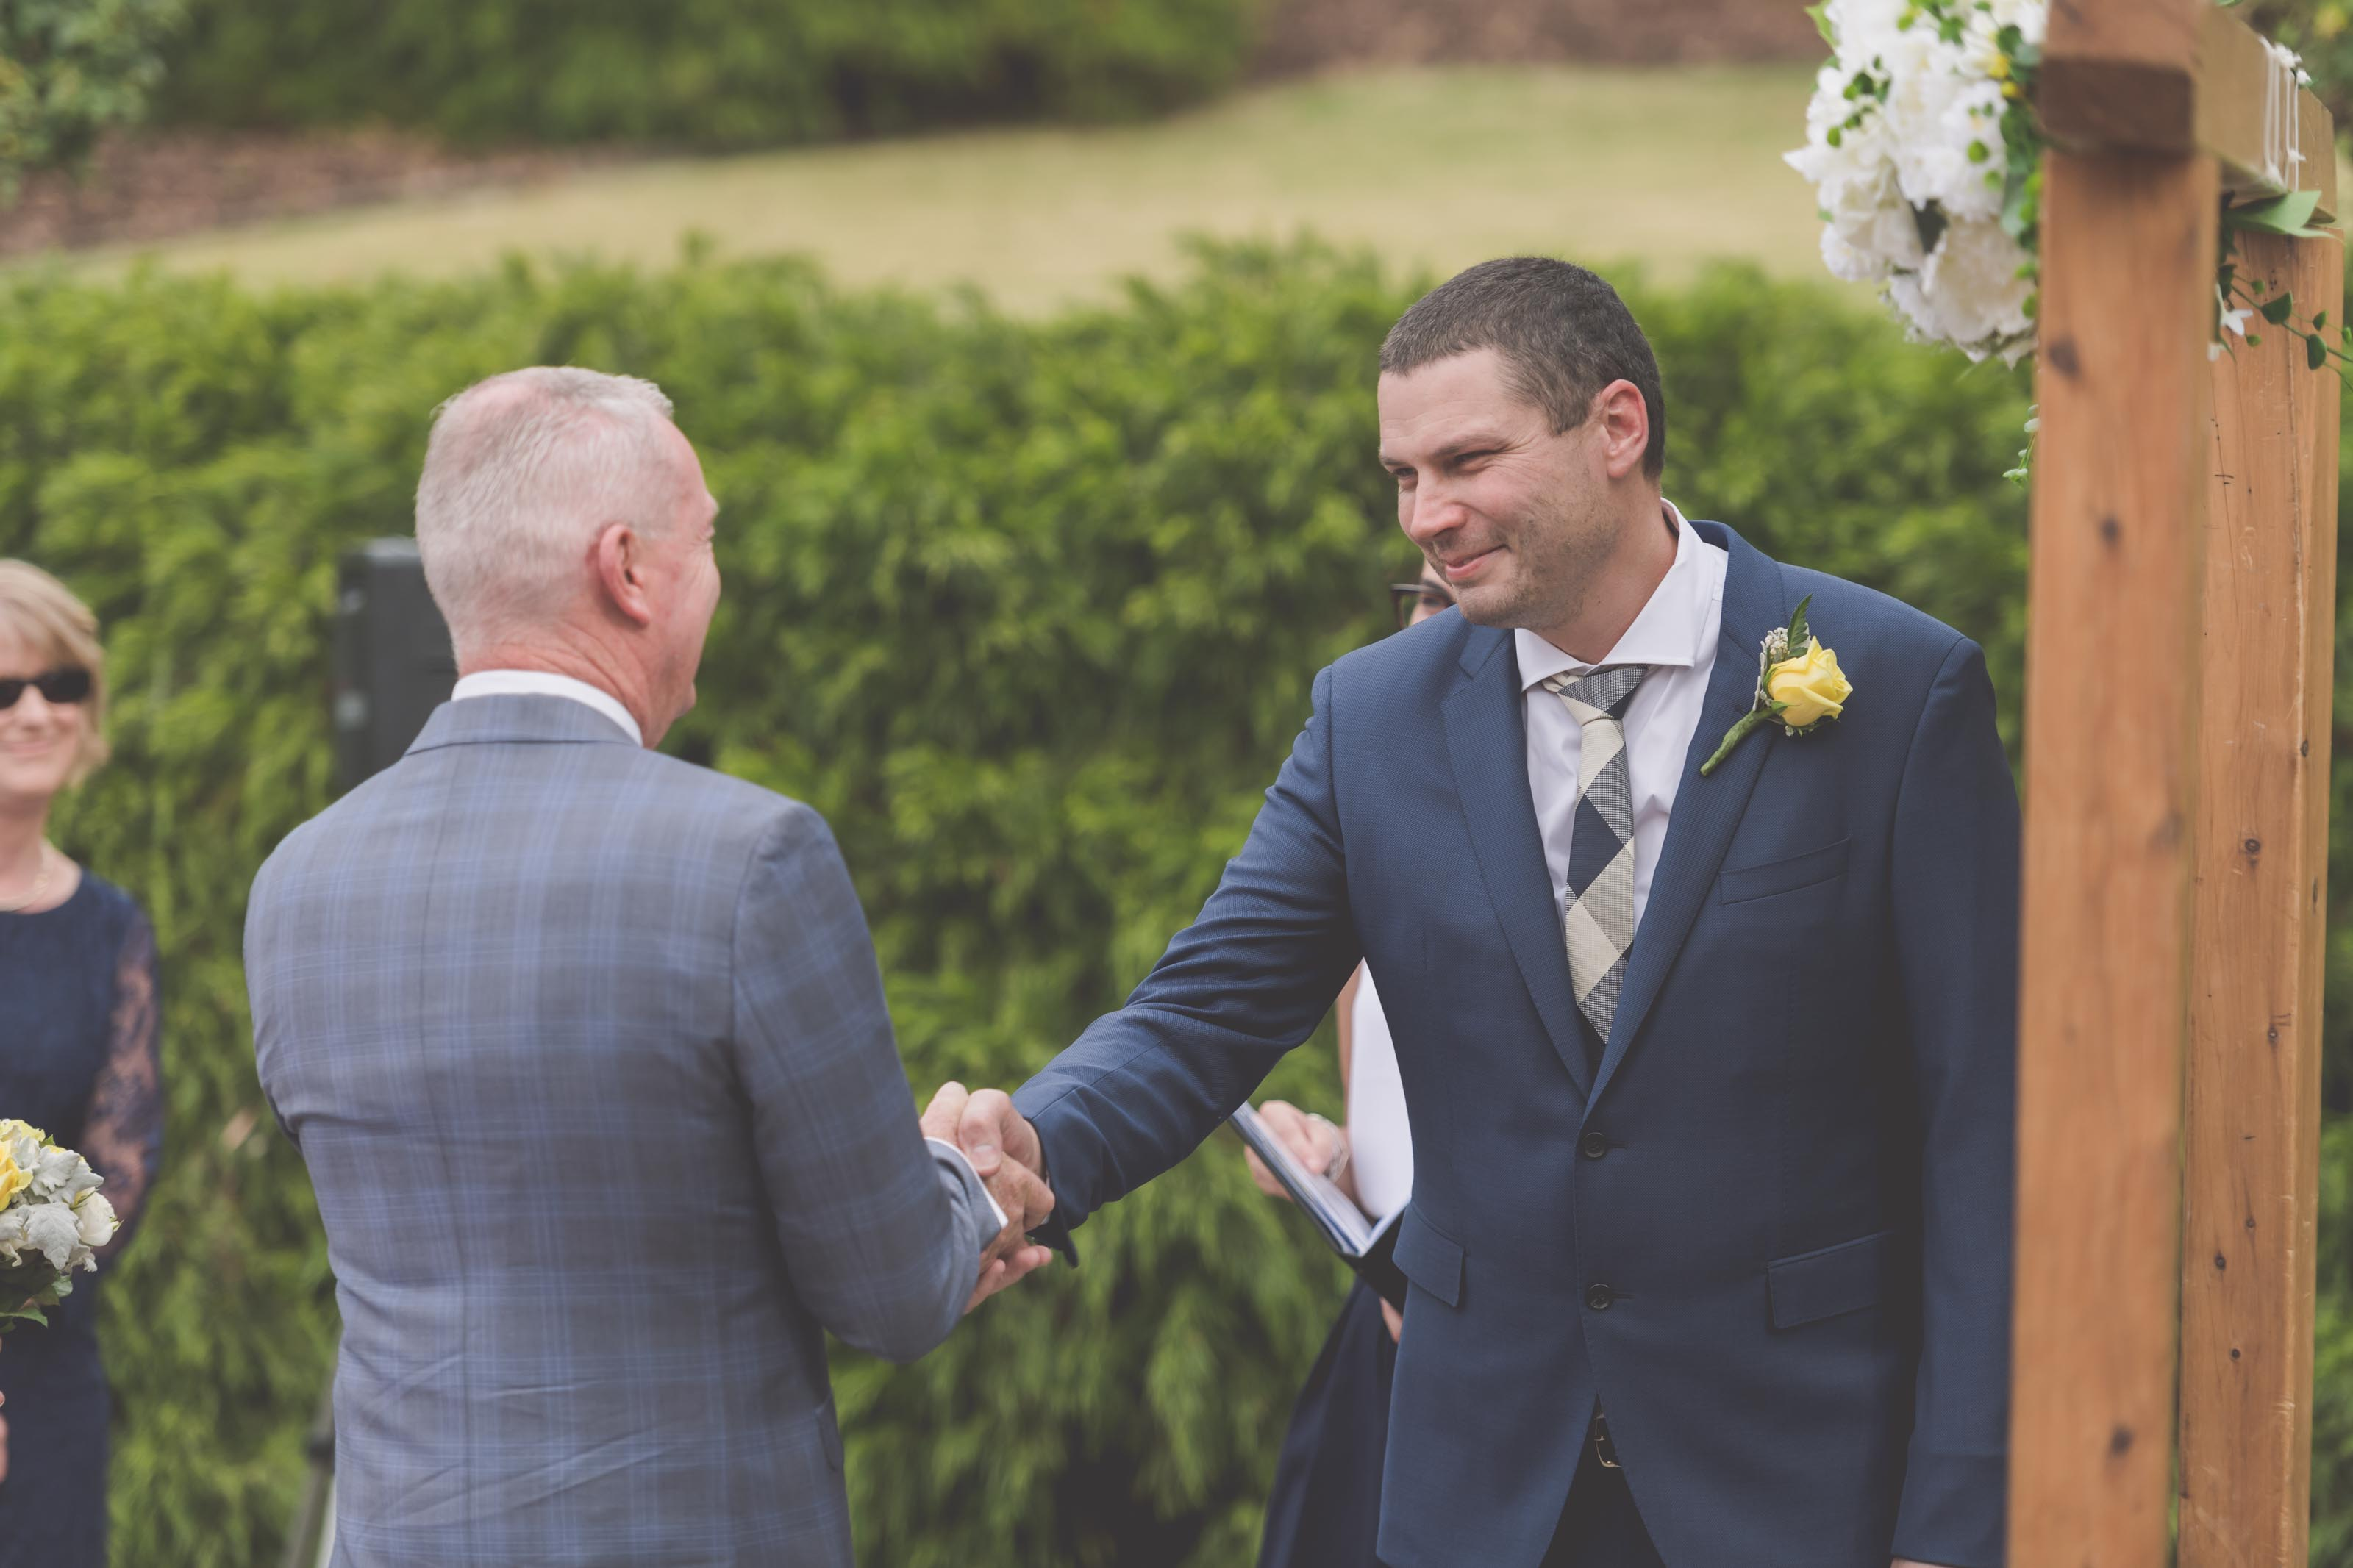 Wedding Photography Melbourne by Pause The Moment - Beautiful wedding photography of a groom and his new father in law - Paringa Estate Wedding Photographer